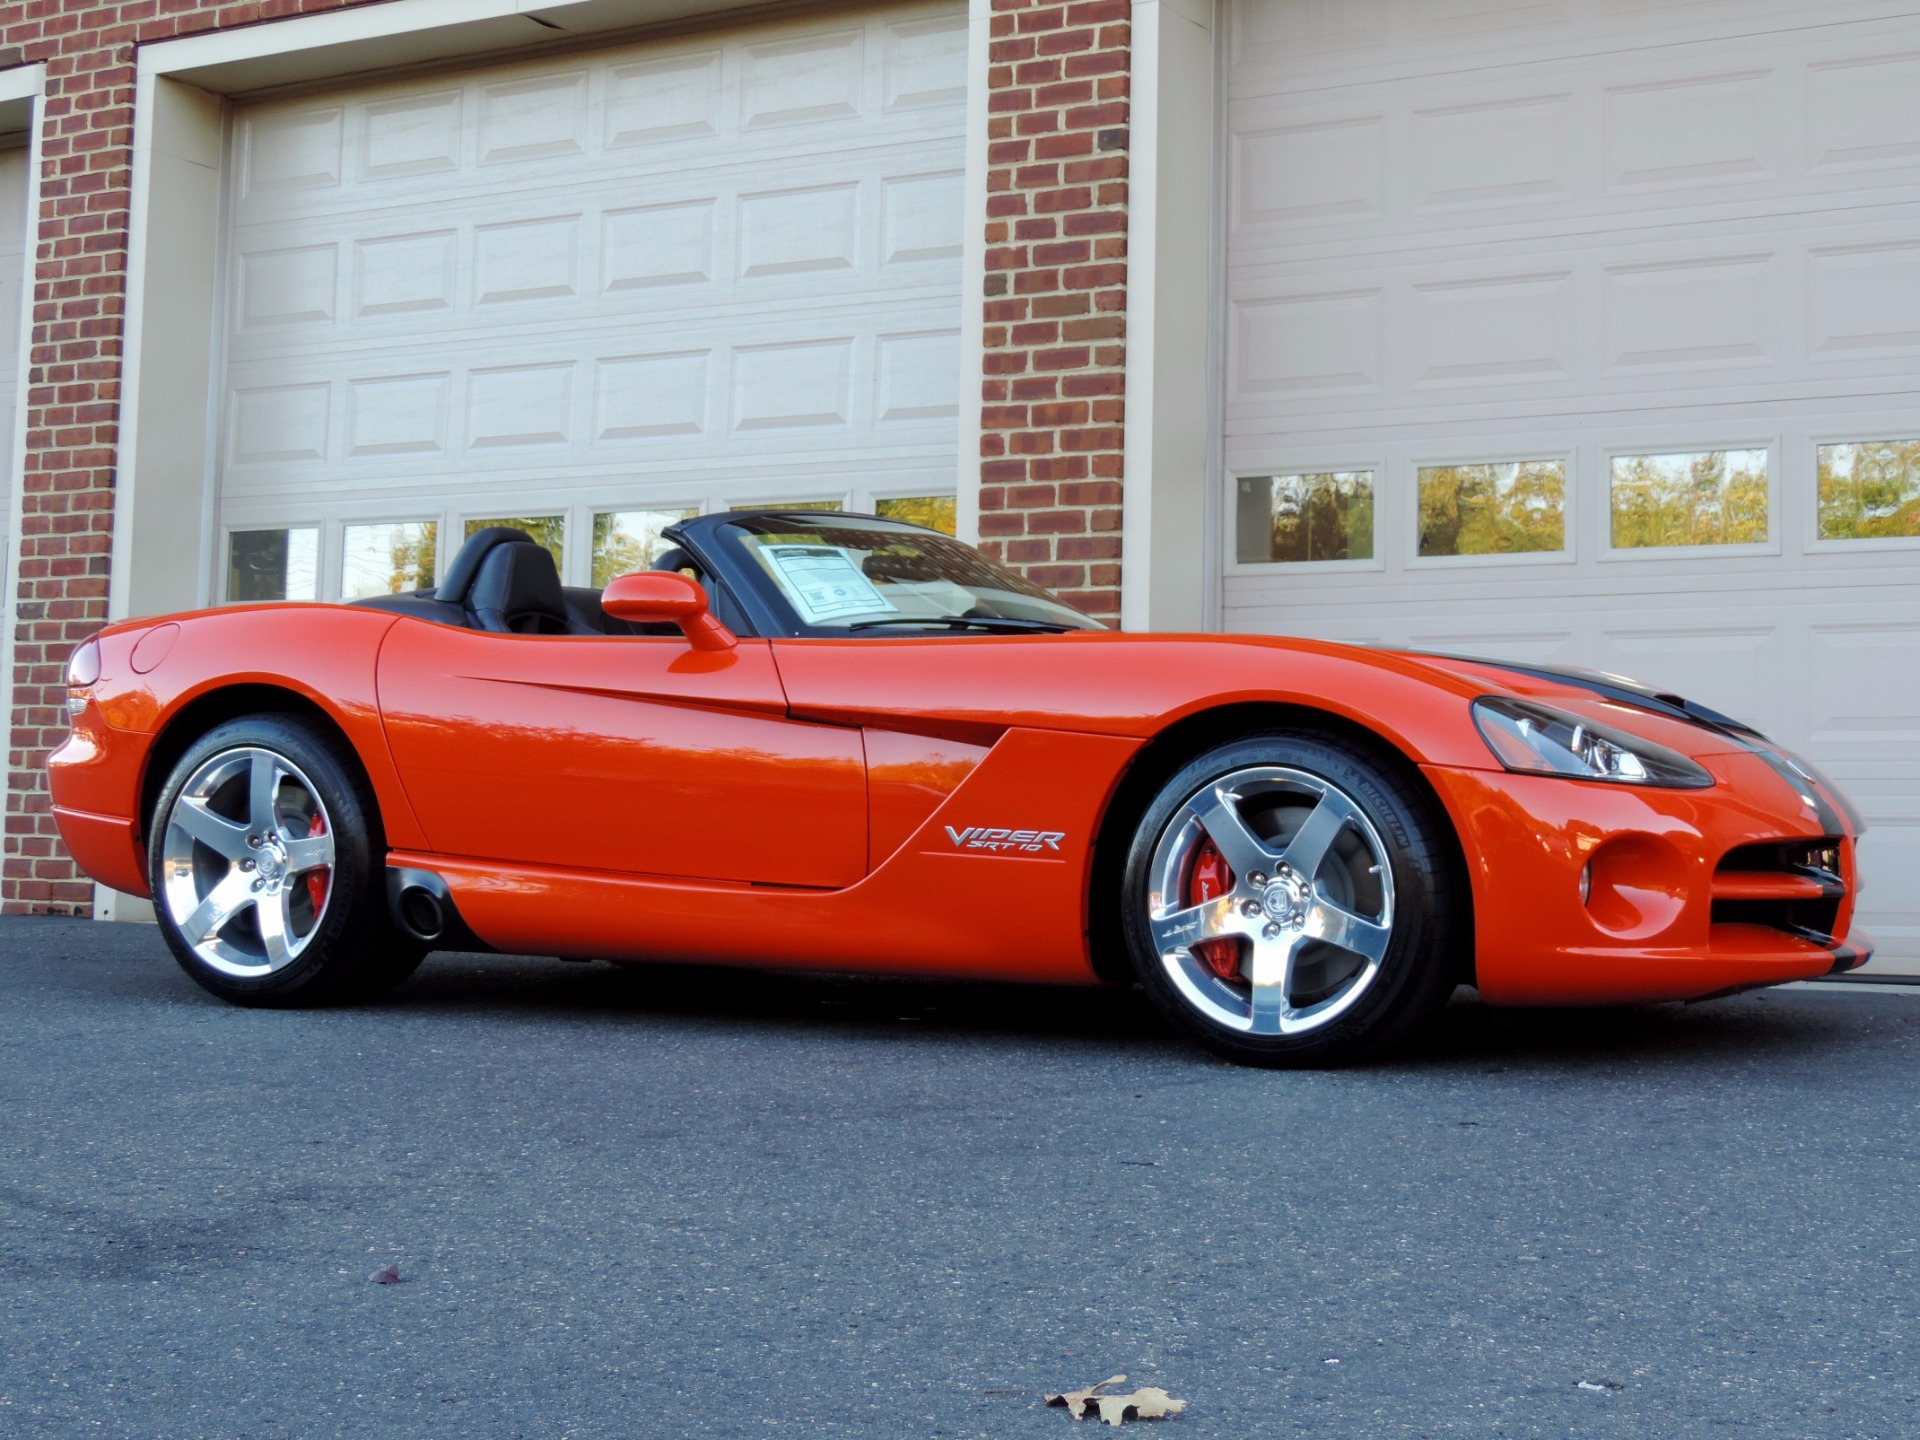 Dodge Dealers In Nj >> 2008 Dodge Viper SRT-10 Stock # 201291 for sale near